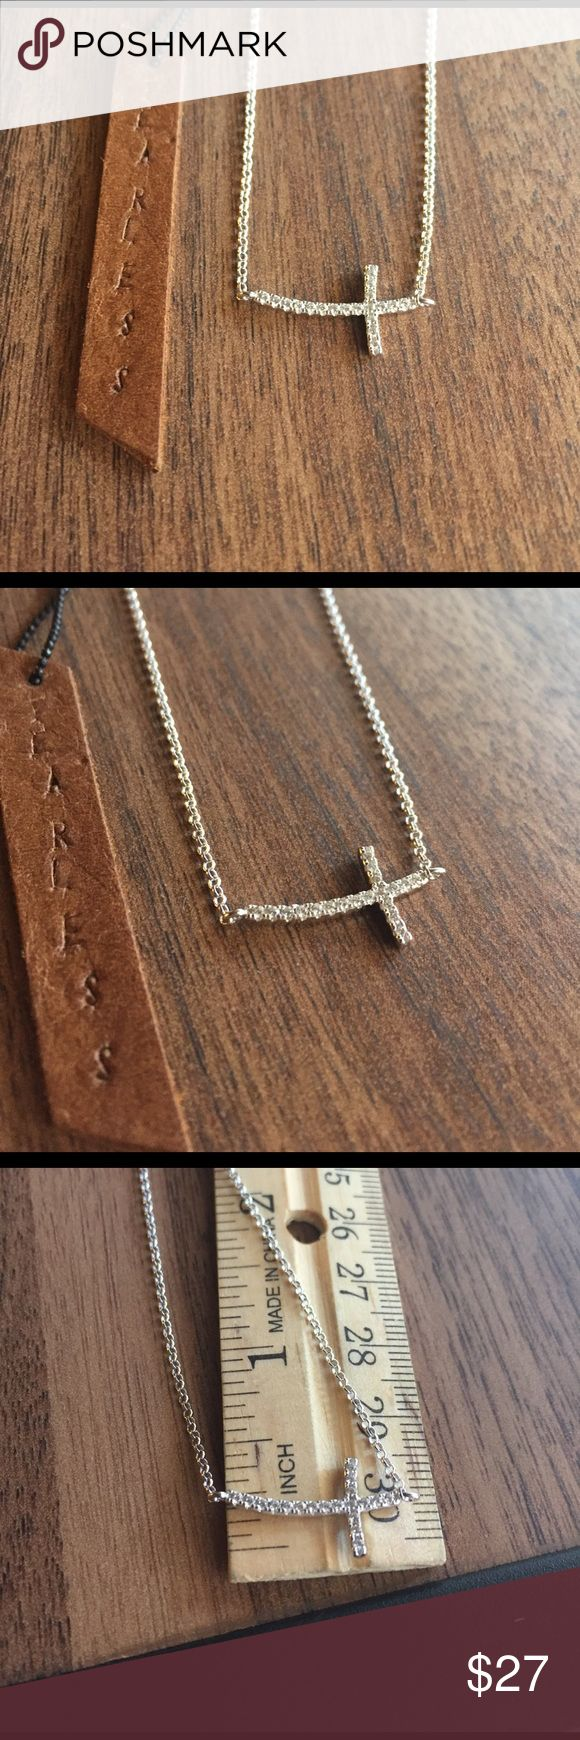 Sterling silver sideway cross 925 solid Sterling silver, shop with confidence wear your jewelry with distinction 16-17 inches long Jewelry Necklaces